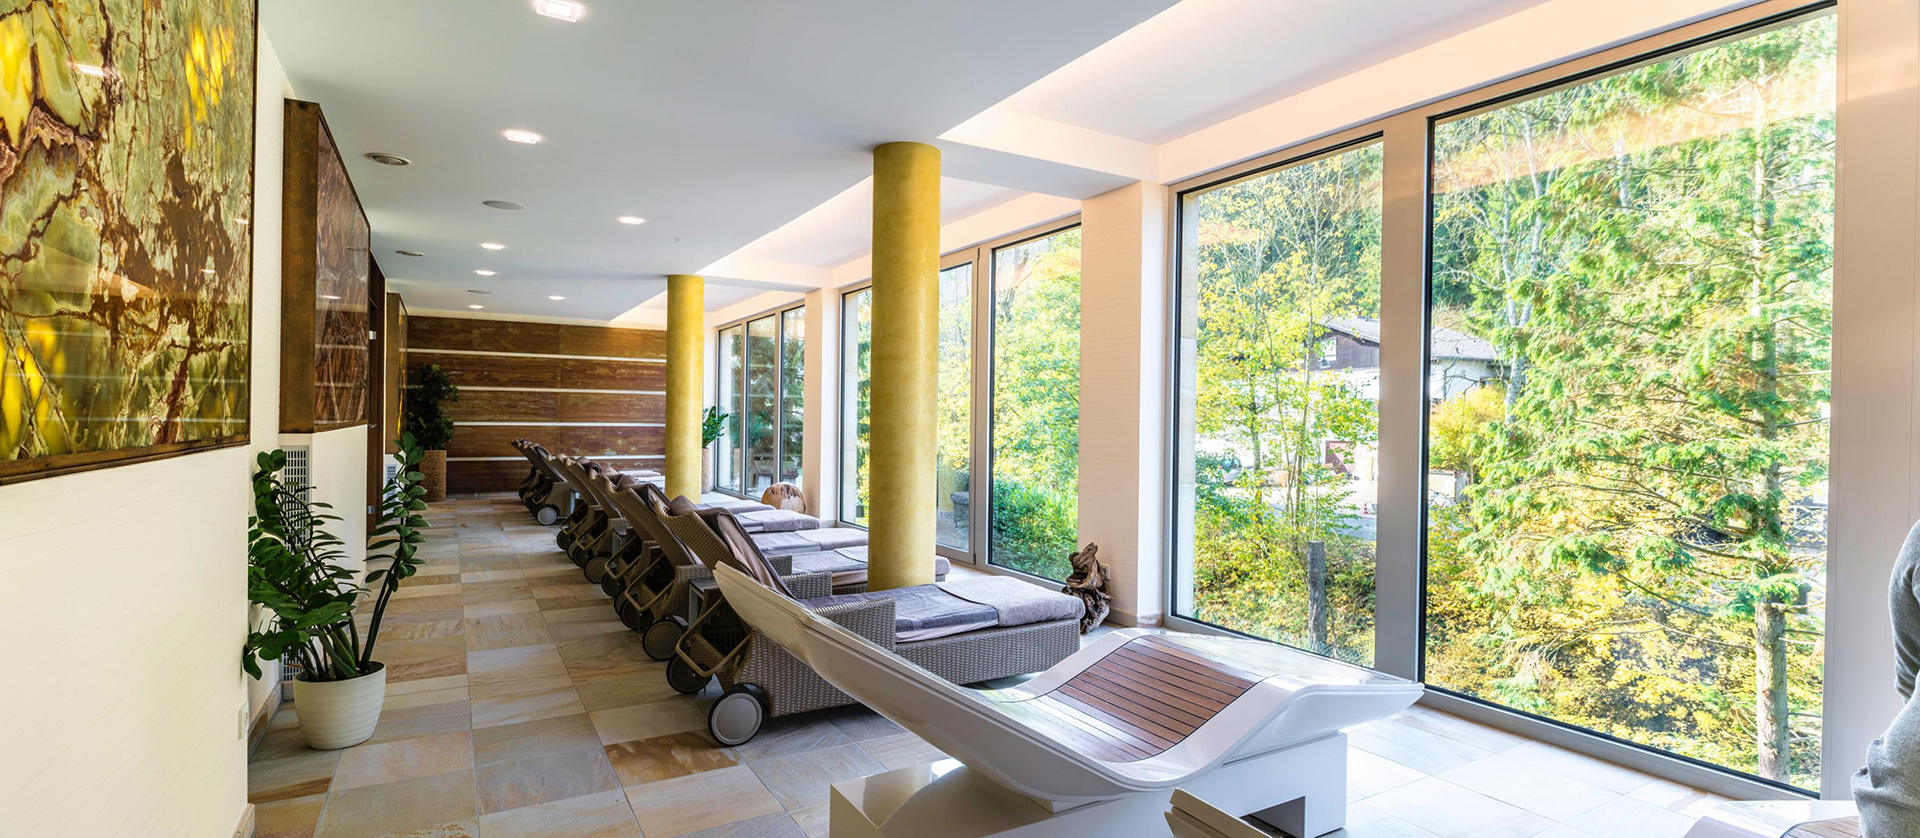 Wellness & Spa - Hotel Brimer